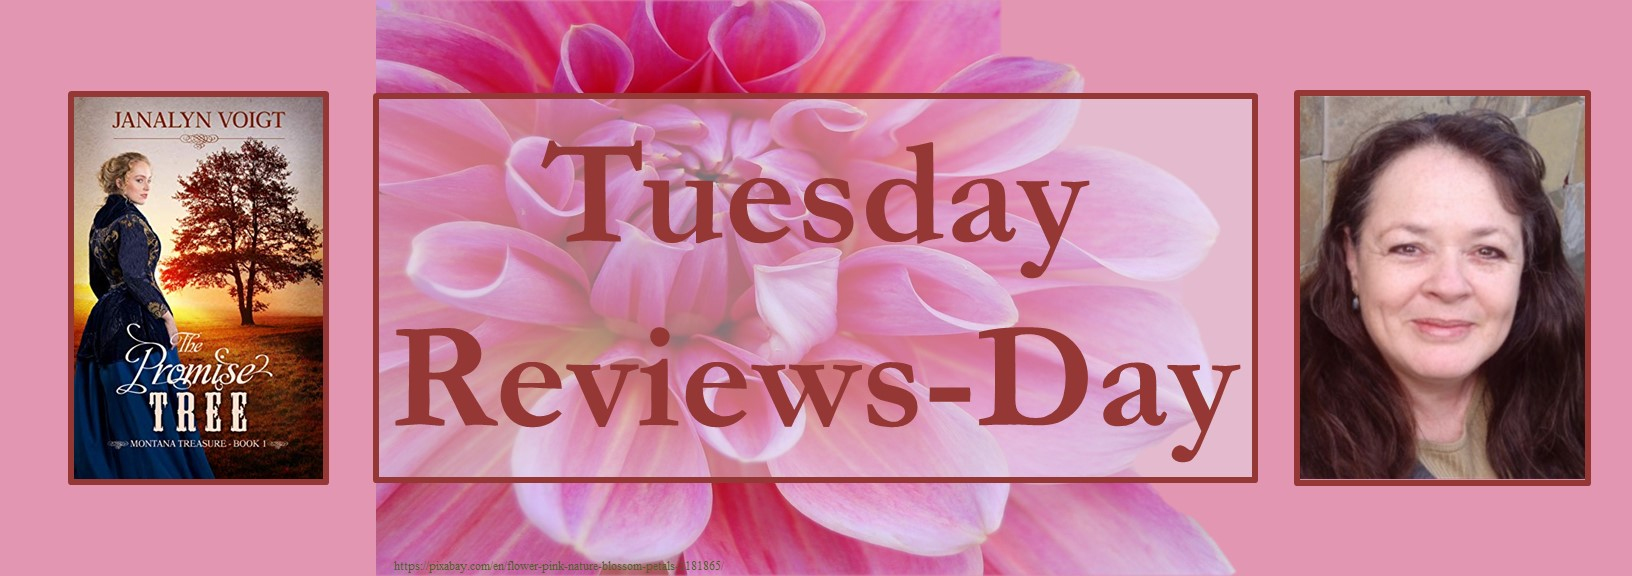 052221 - the promise tree - tuesday reviews day banner